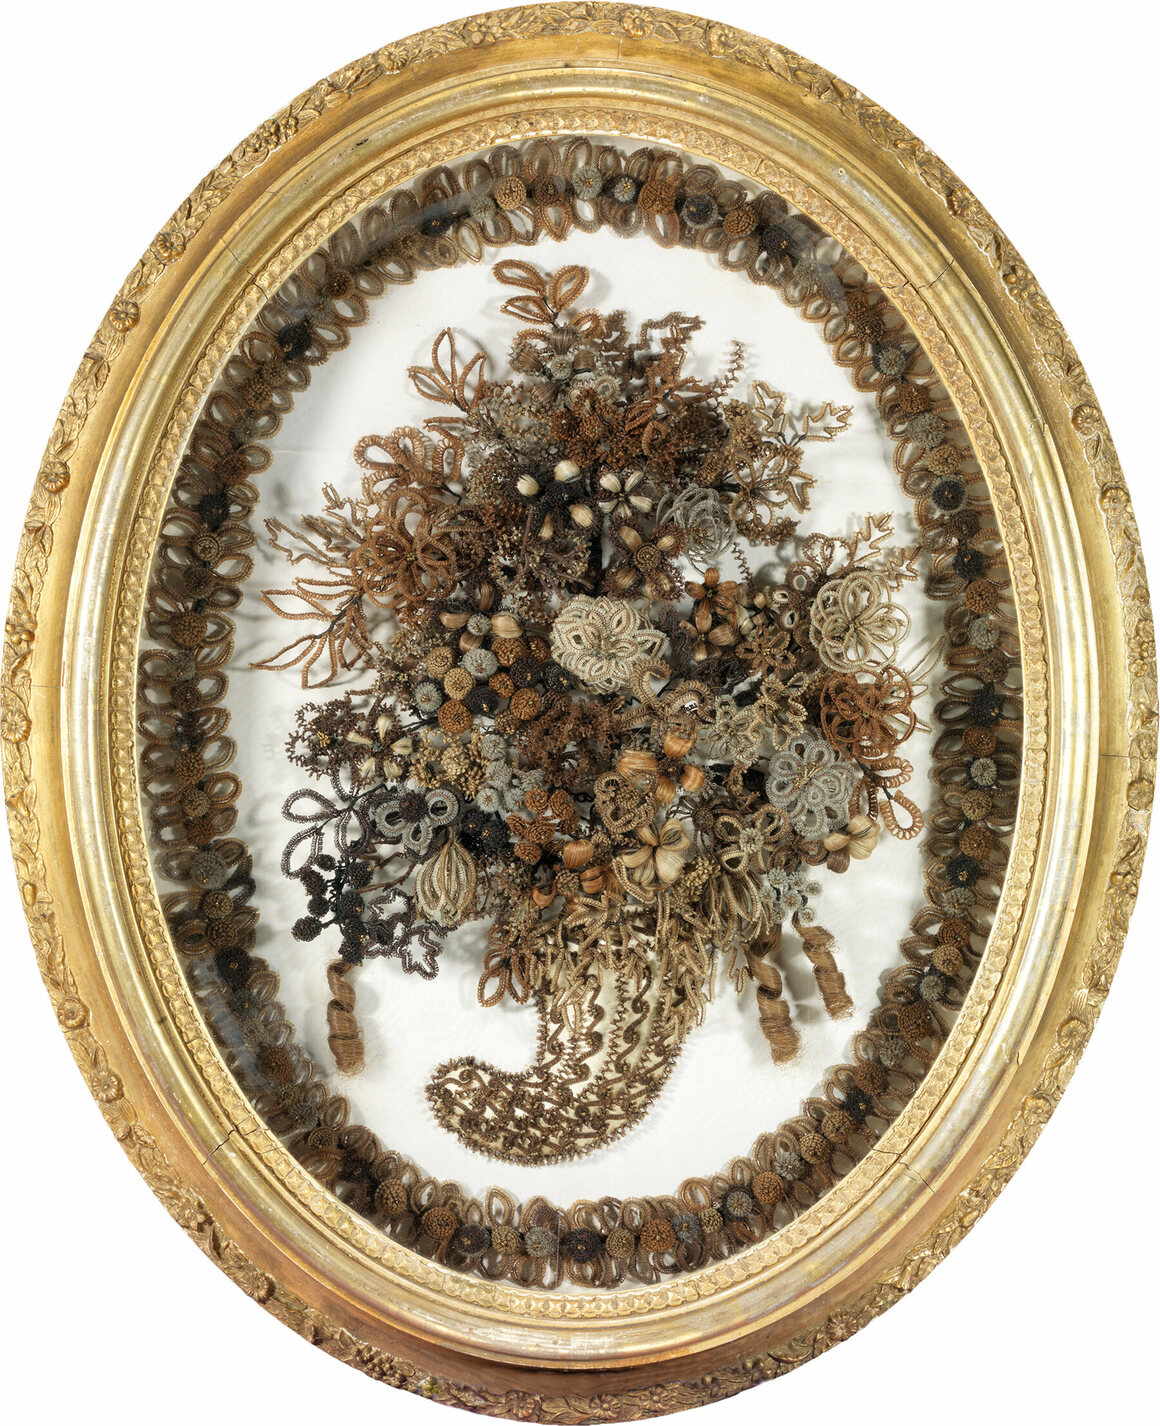 Nosegay with border, signed on reverse by Mrs. William J. Smith, Brookline, New Hampshire, gilt gesso, wood, glass, paper, wire, and human hair using gimp work, 1860-61.